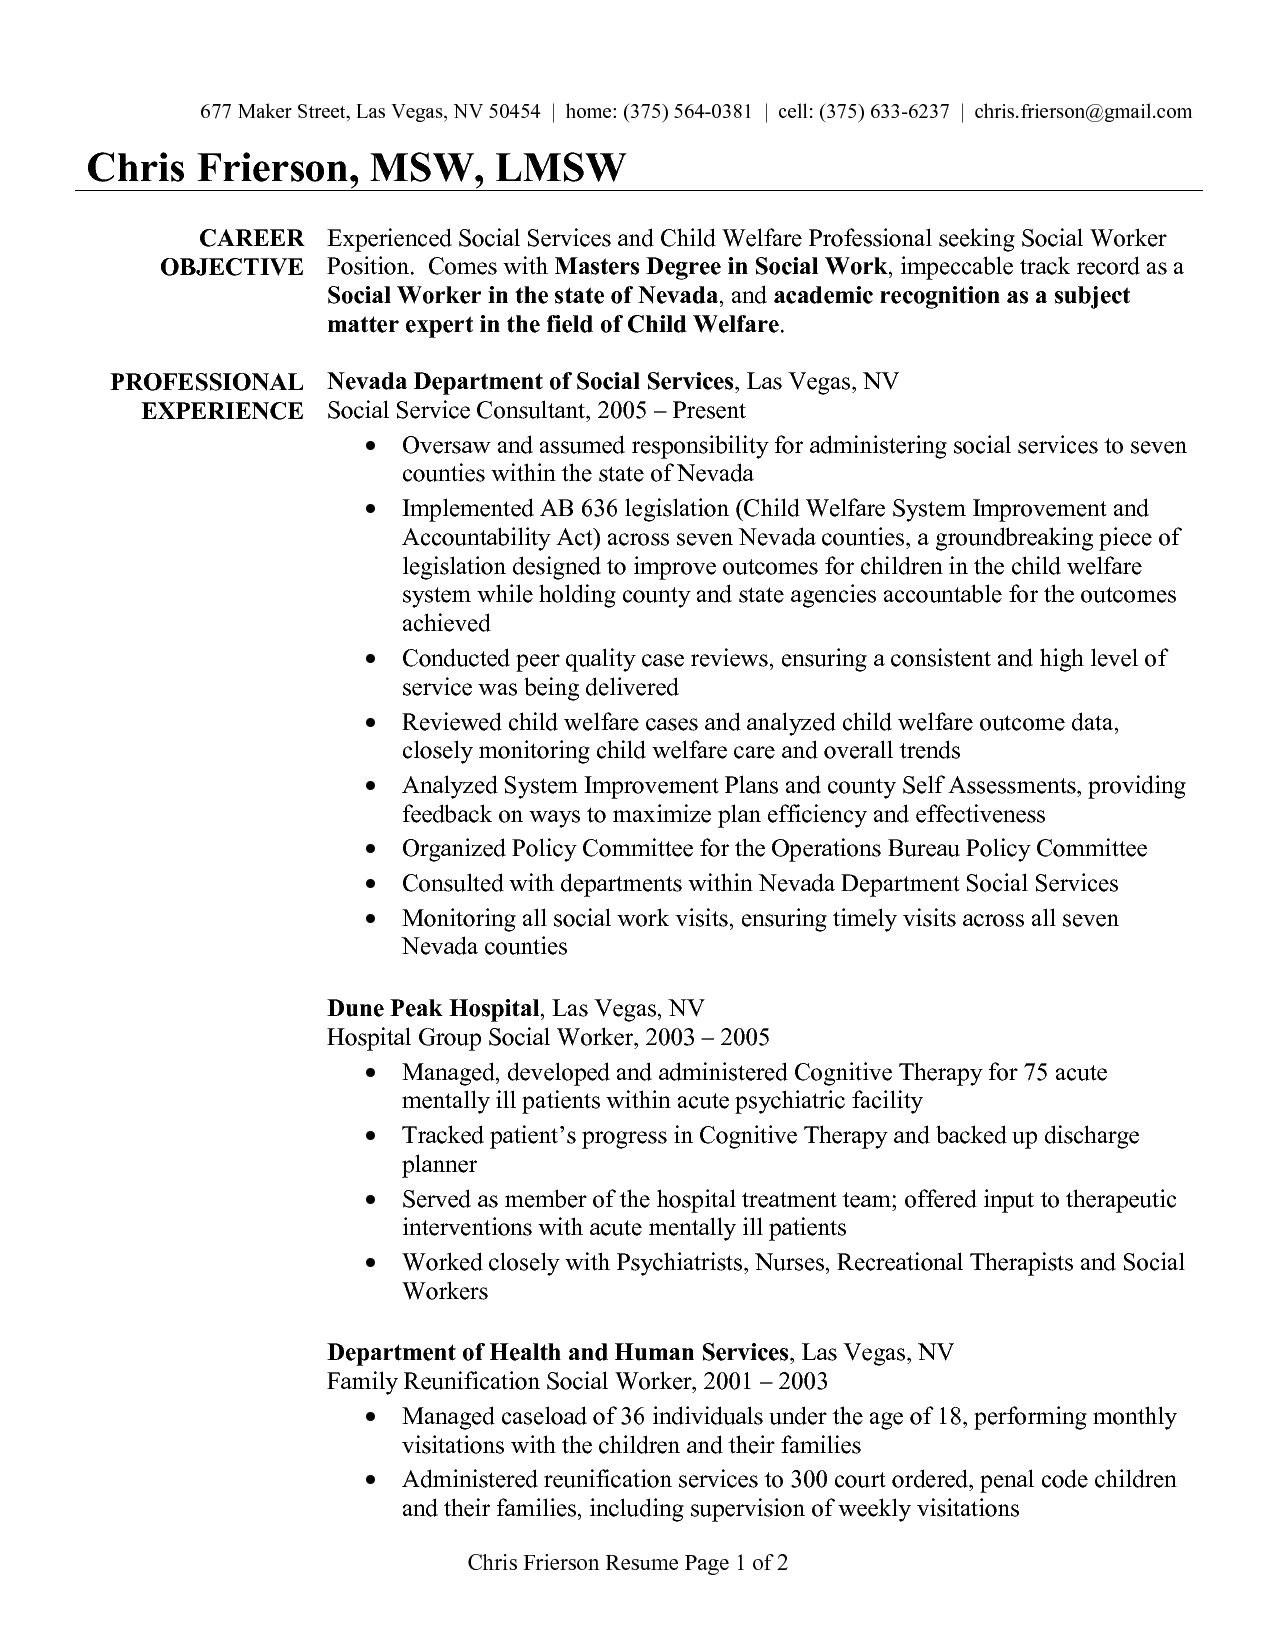 Sample Resume Skills Social Work Resume Examples  Social Worker Resume Sample